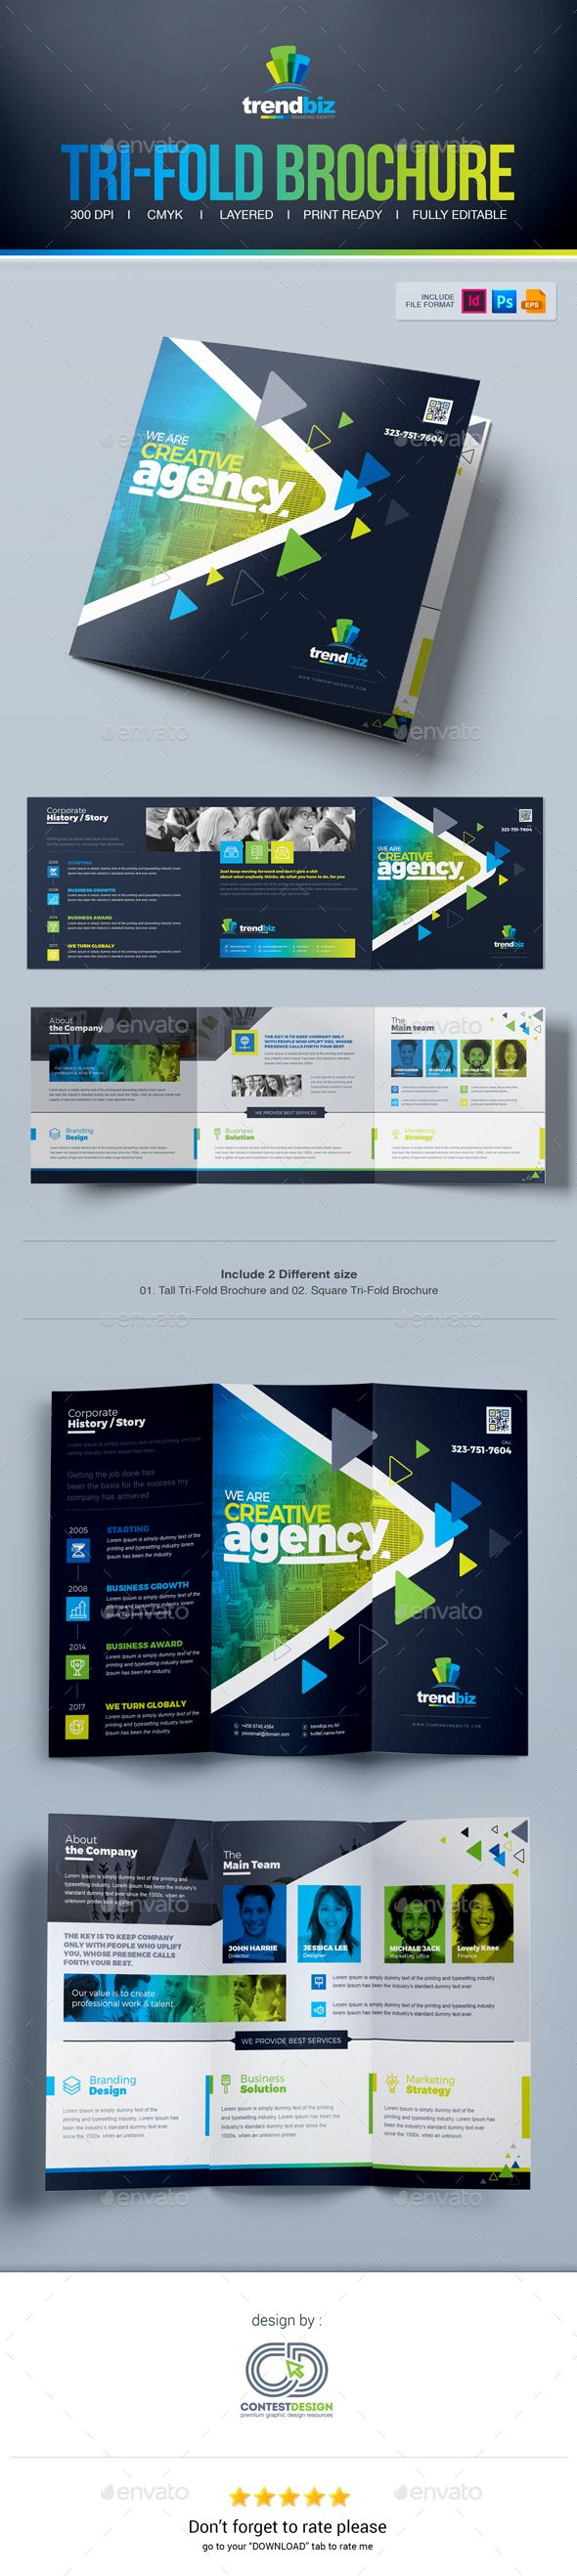 Cute 1 Page Website Template Tall 10 Best Resume Writers Round 100 Square Pool Template 1099 Employee Contract Template Old 2 Column Notes Template Soft2 Page Resume Format Doc  Square Tri Fold Brochure Design | An ..